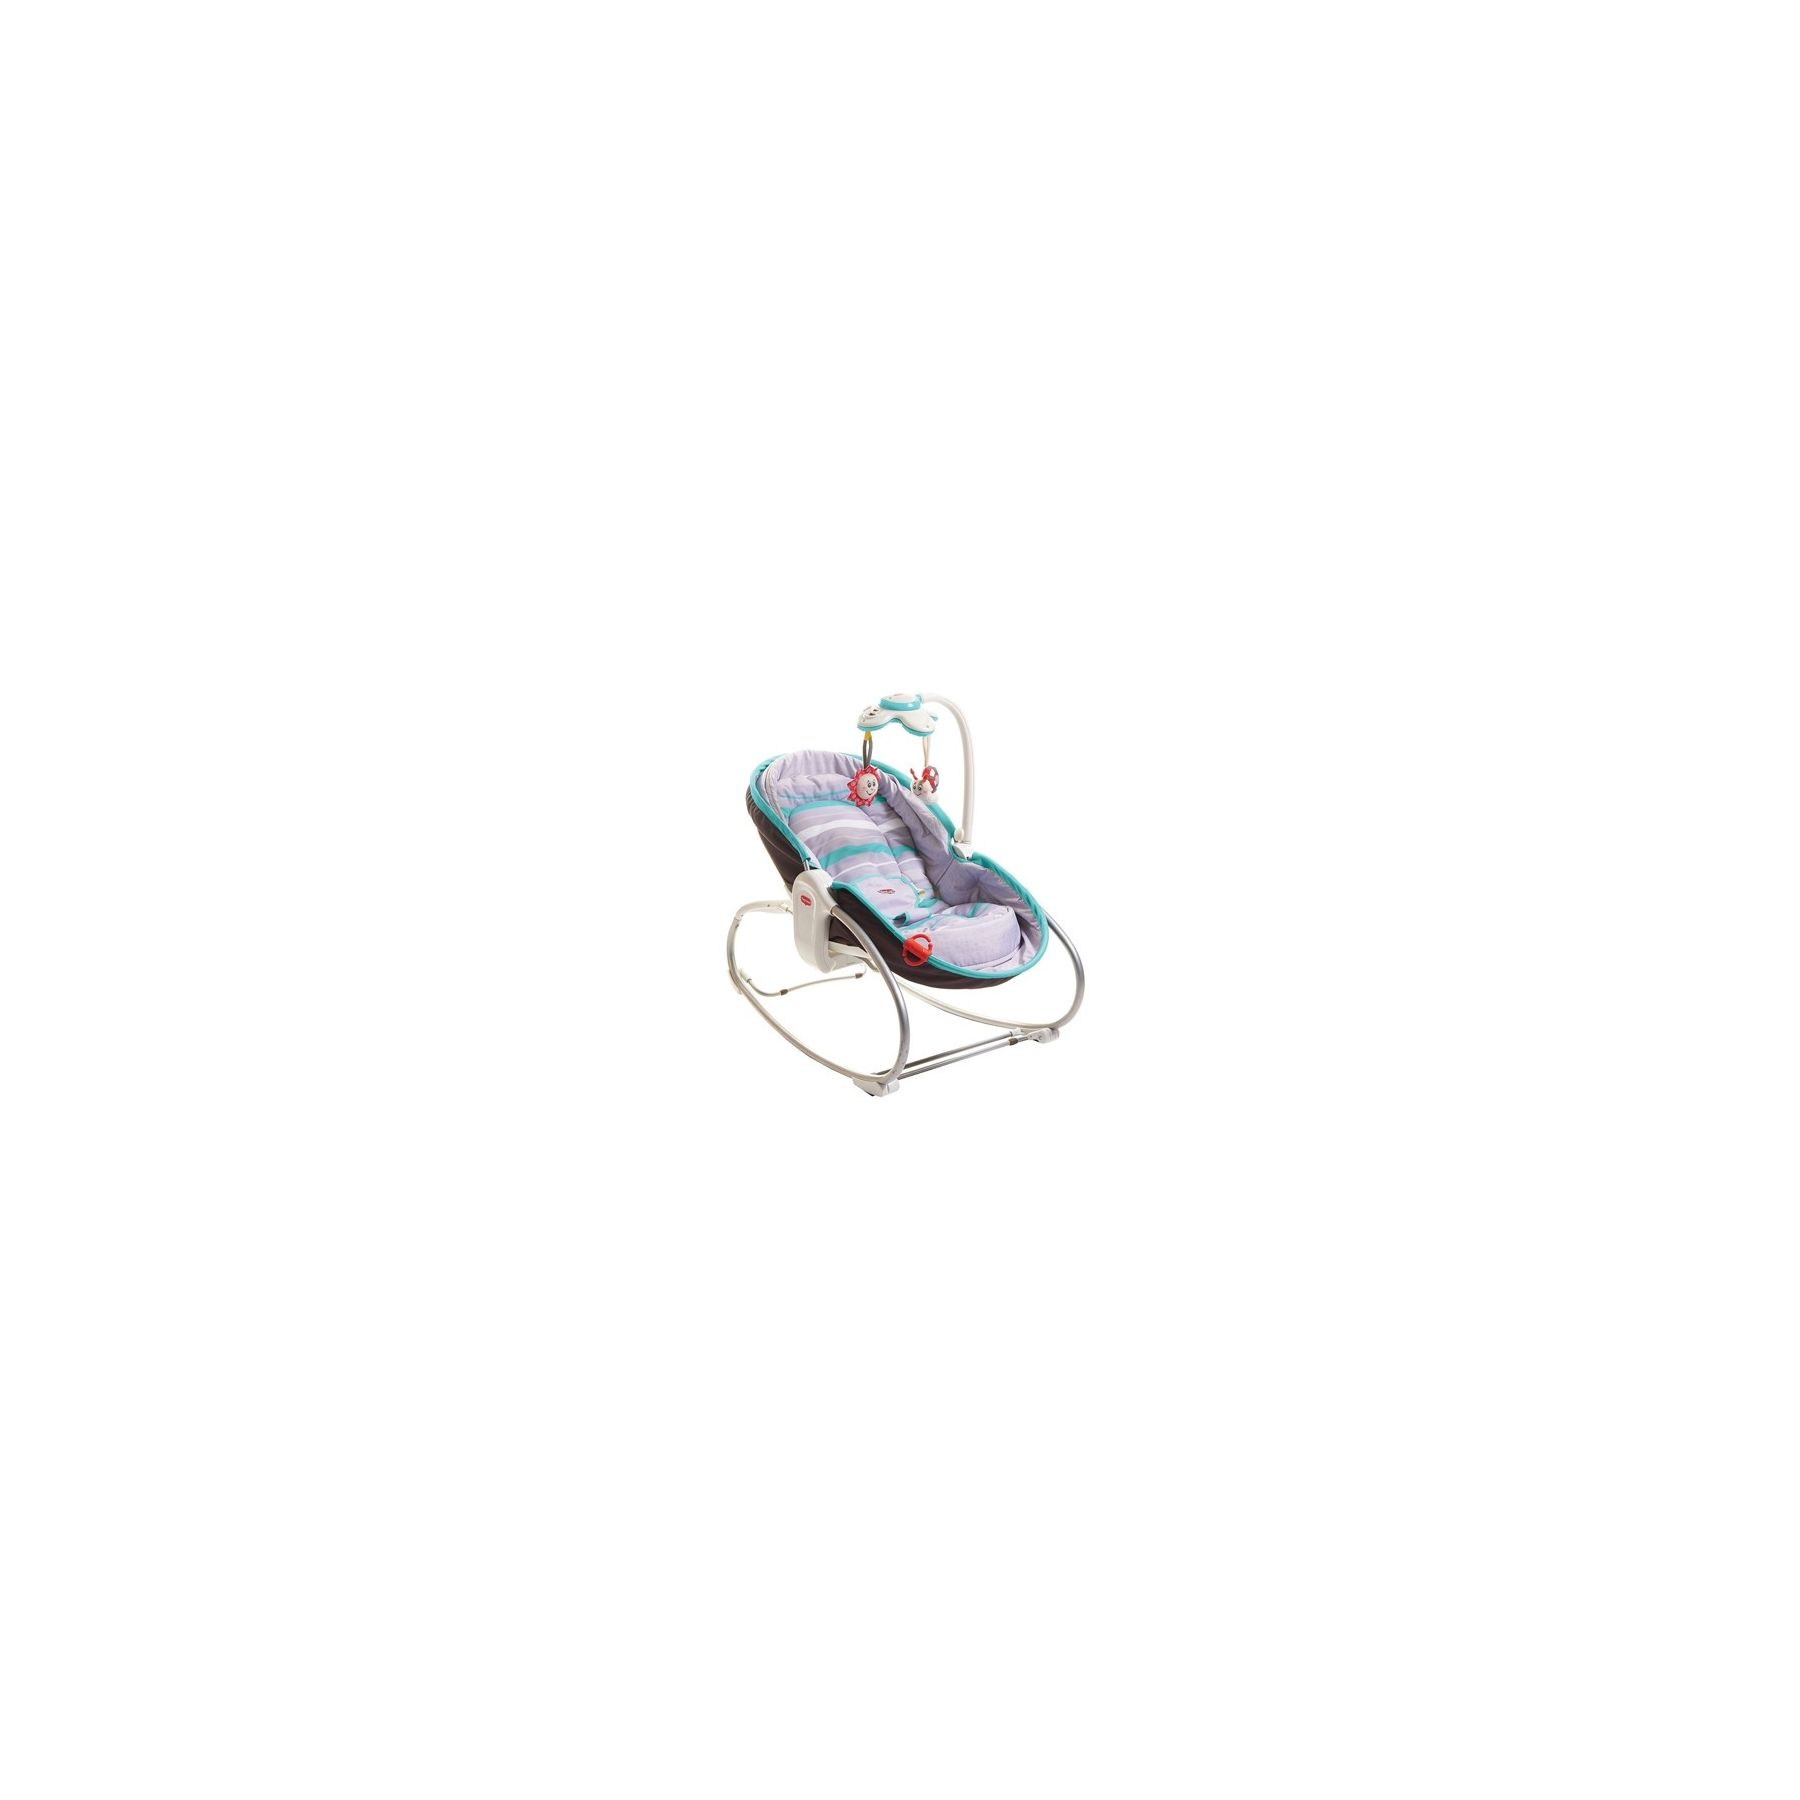 Transat bébé Rocker Napper 3 en 1 Gris Tourquoise Tiny Love